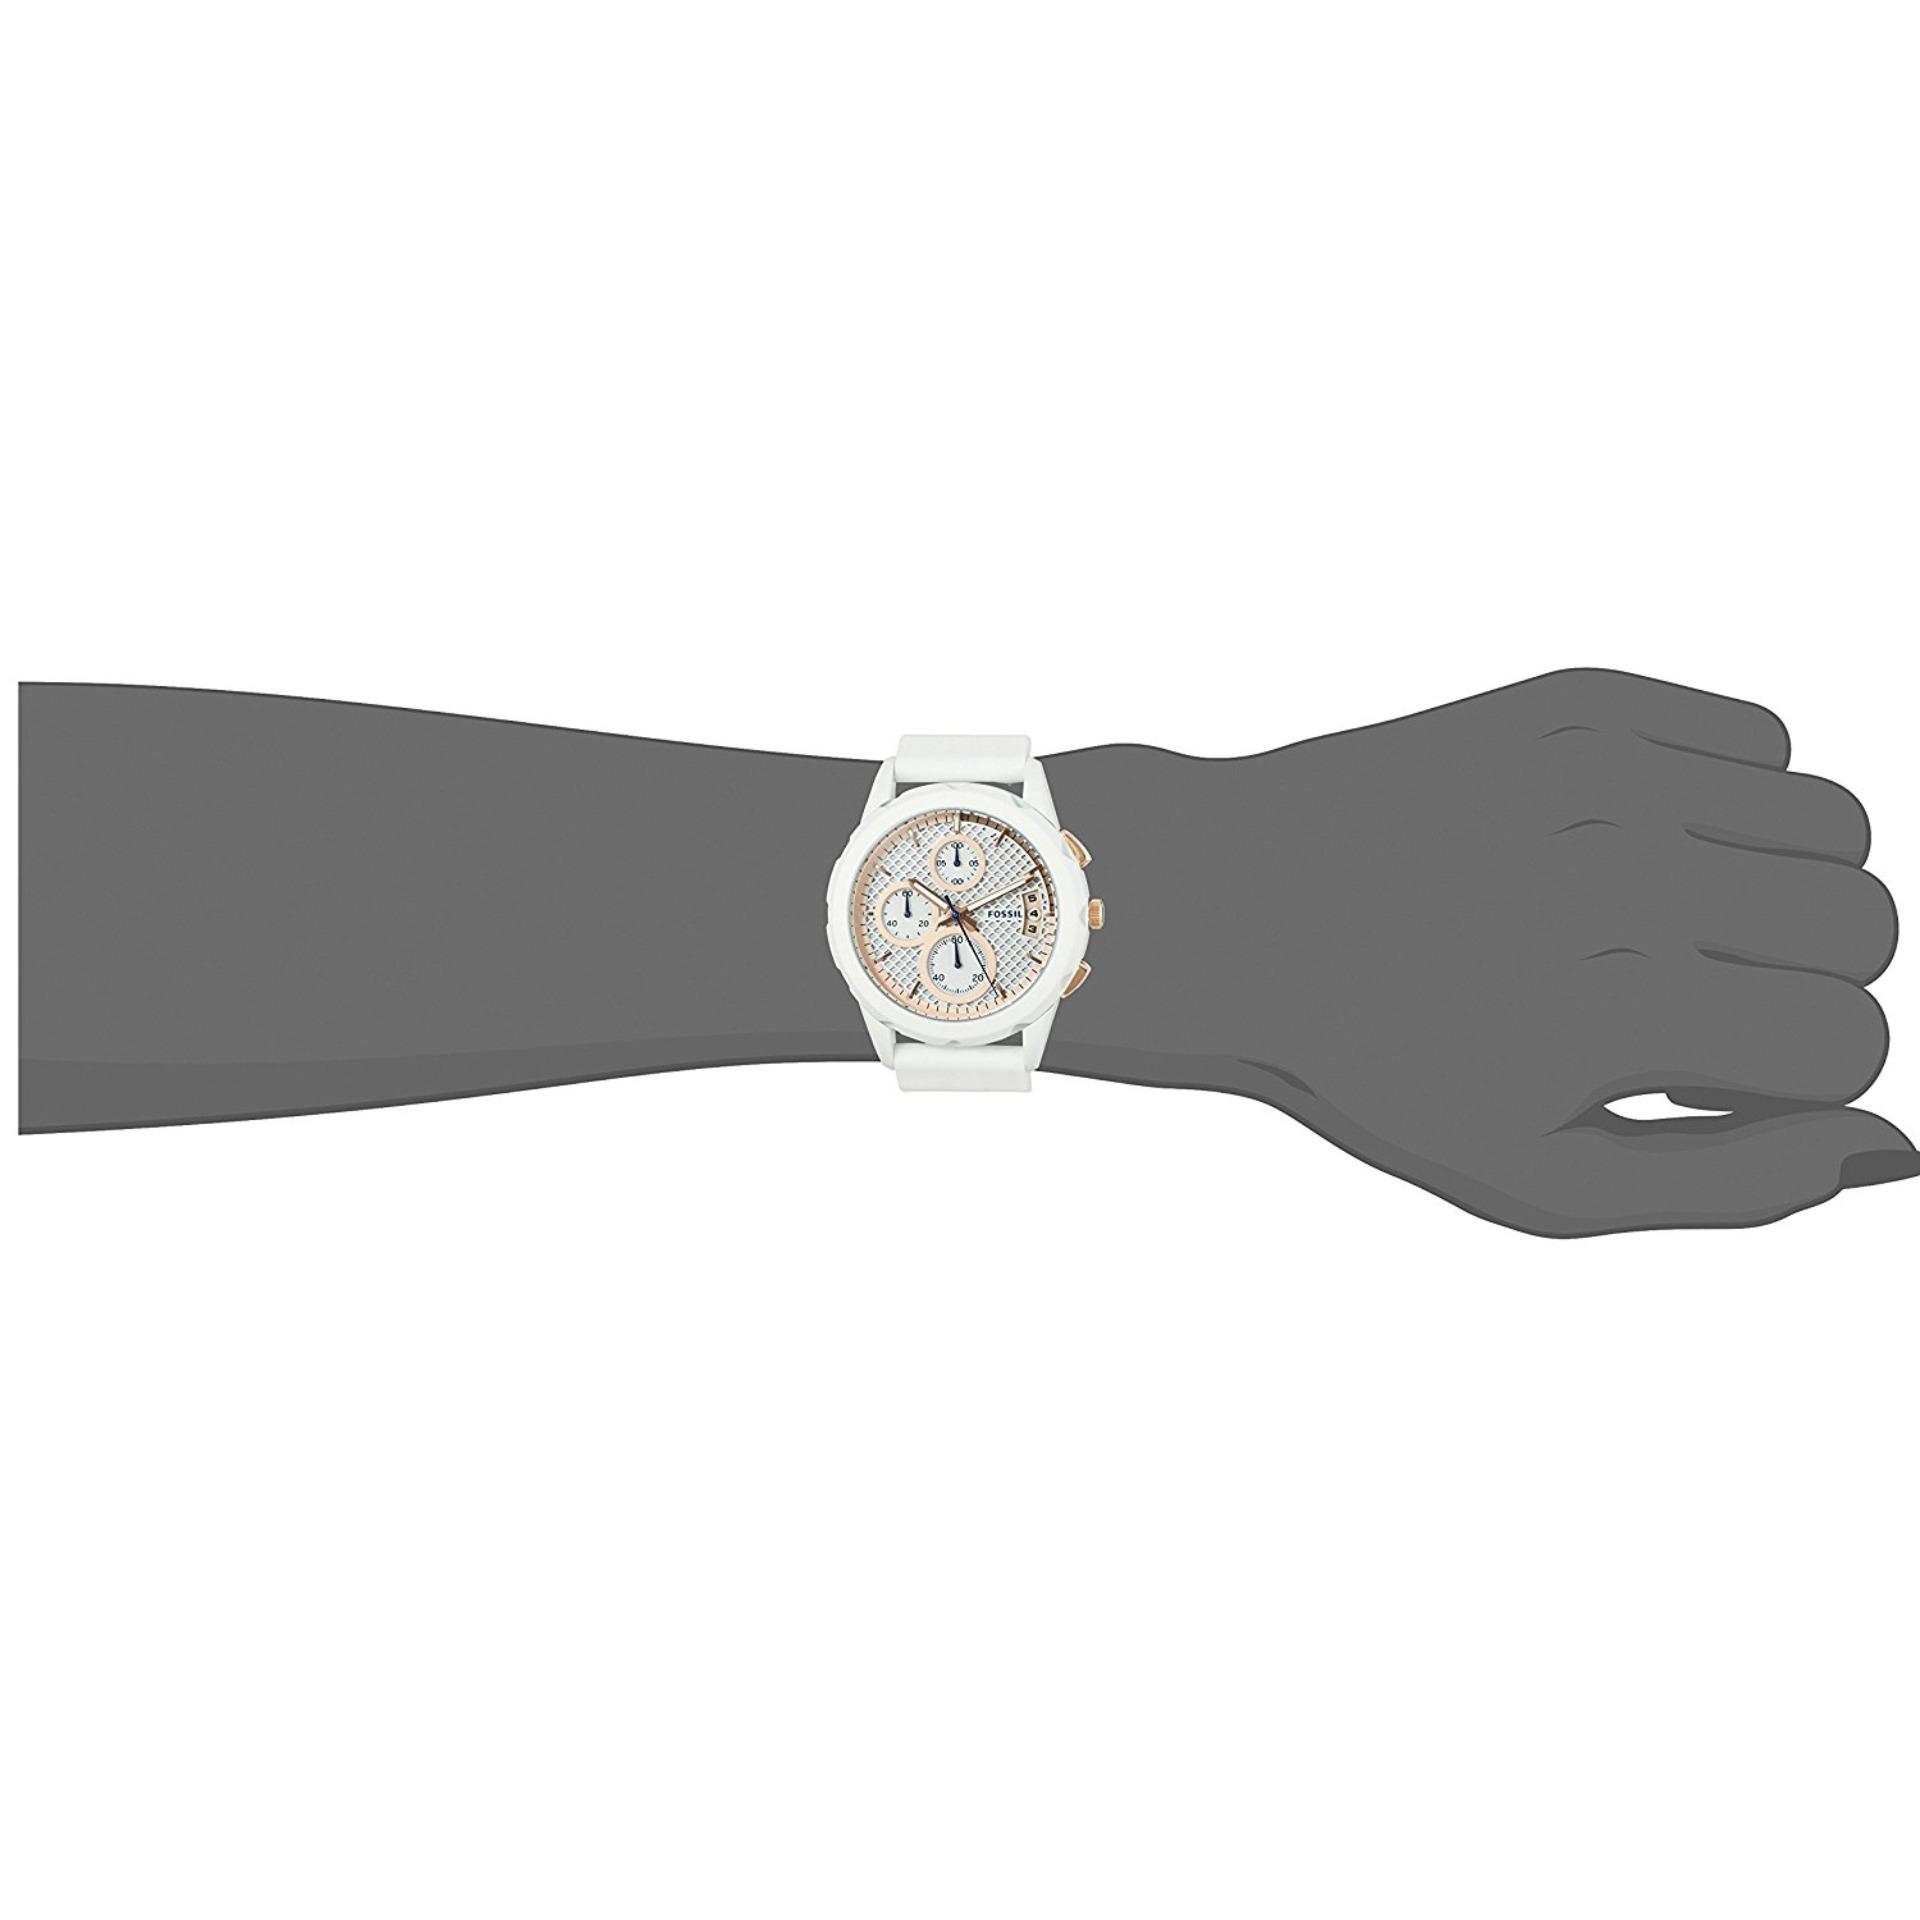 Fossil Modern Pursuit Chronograph White Silicone Watch, ES 3981 .